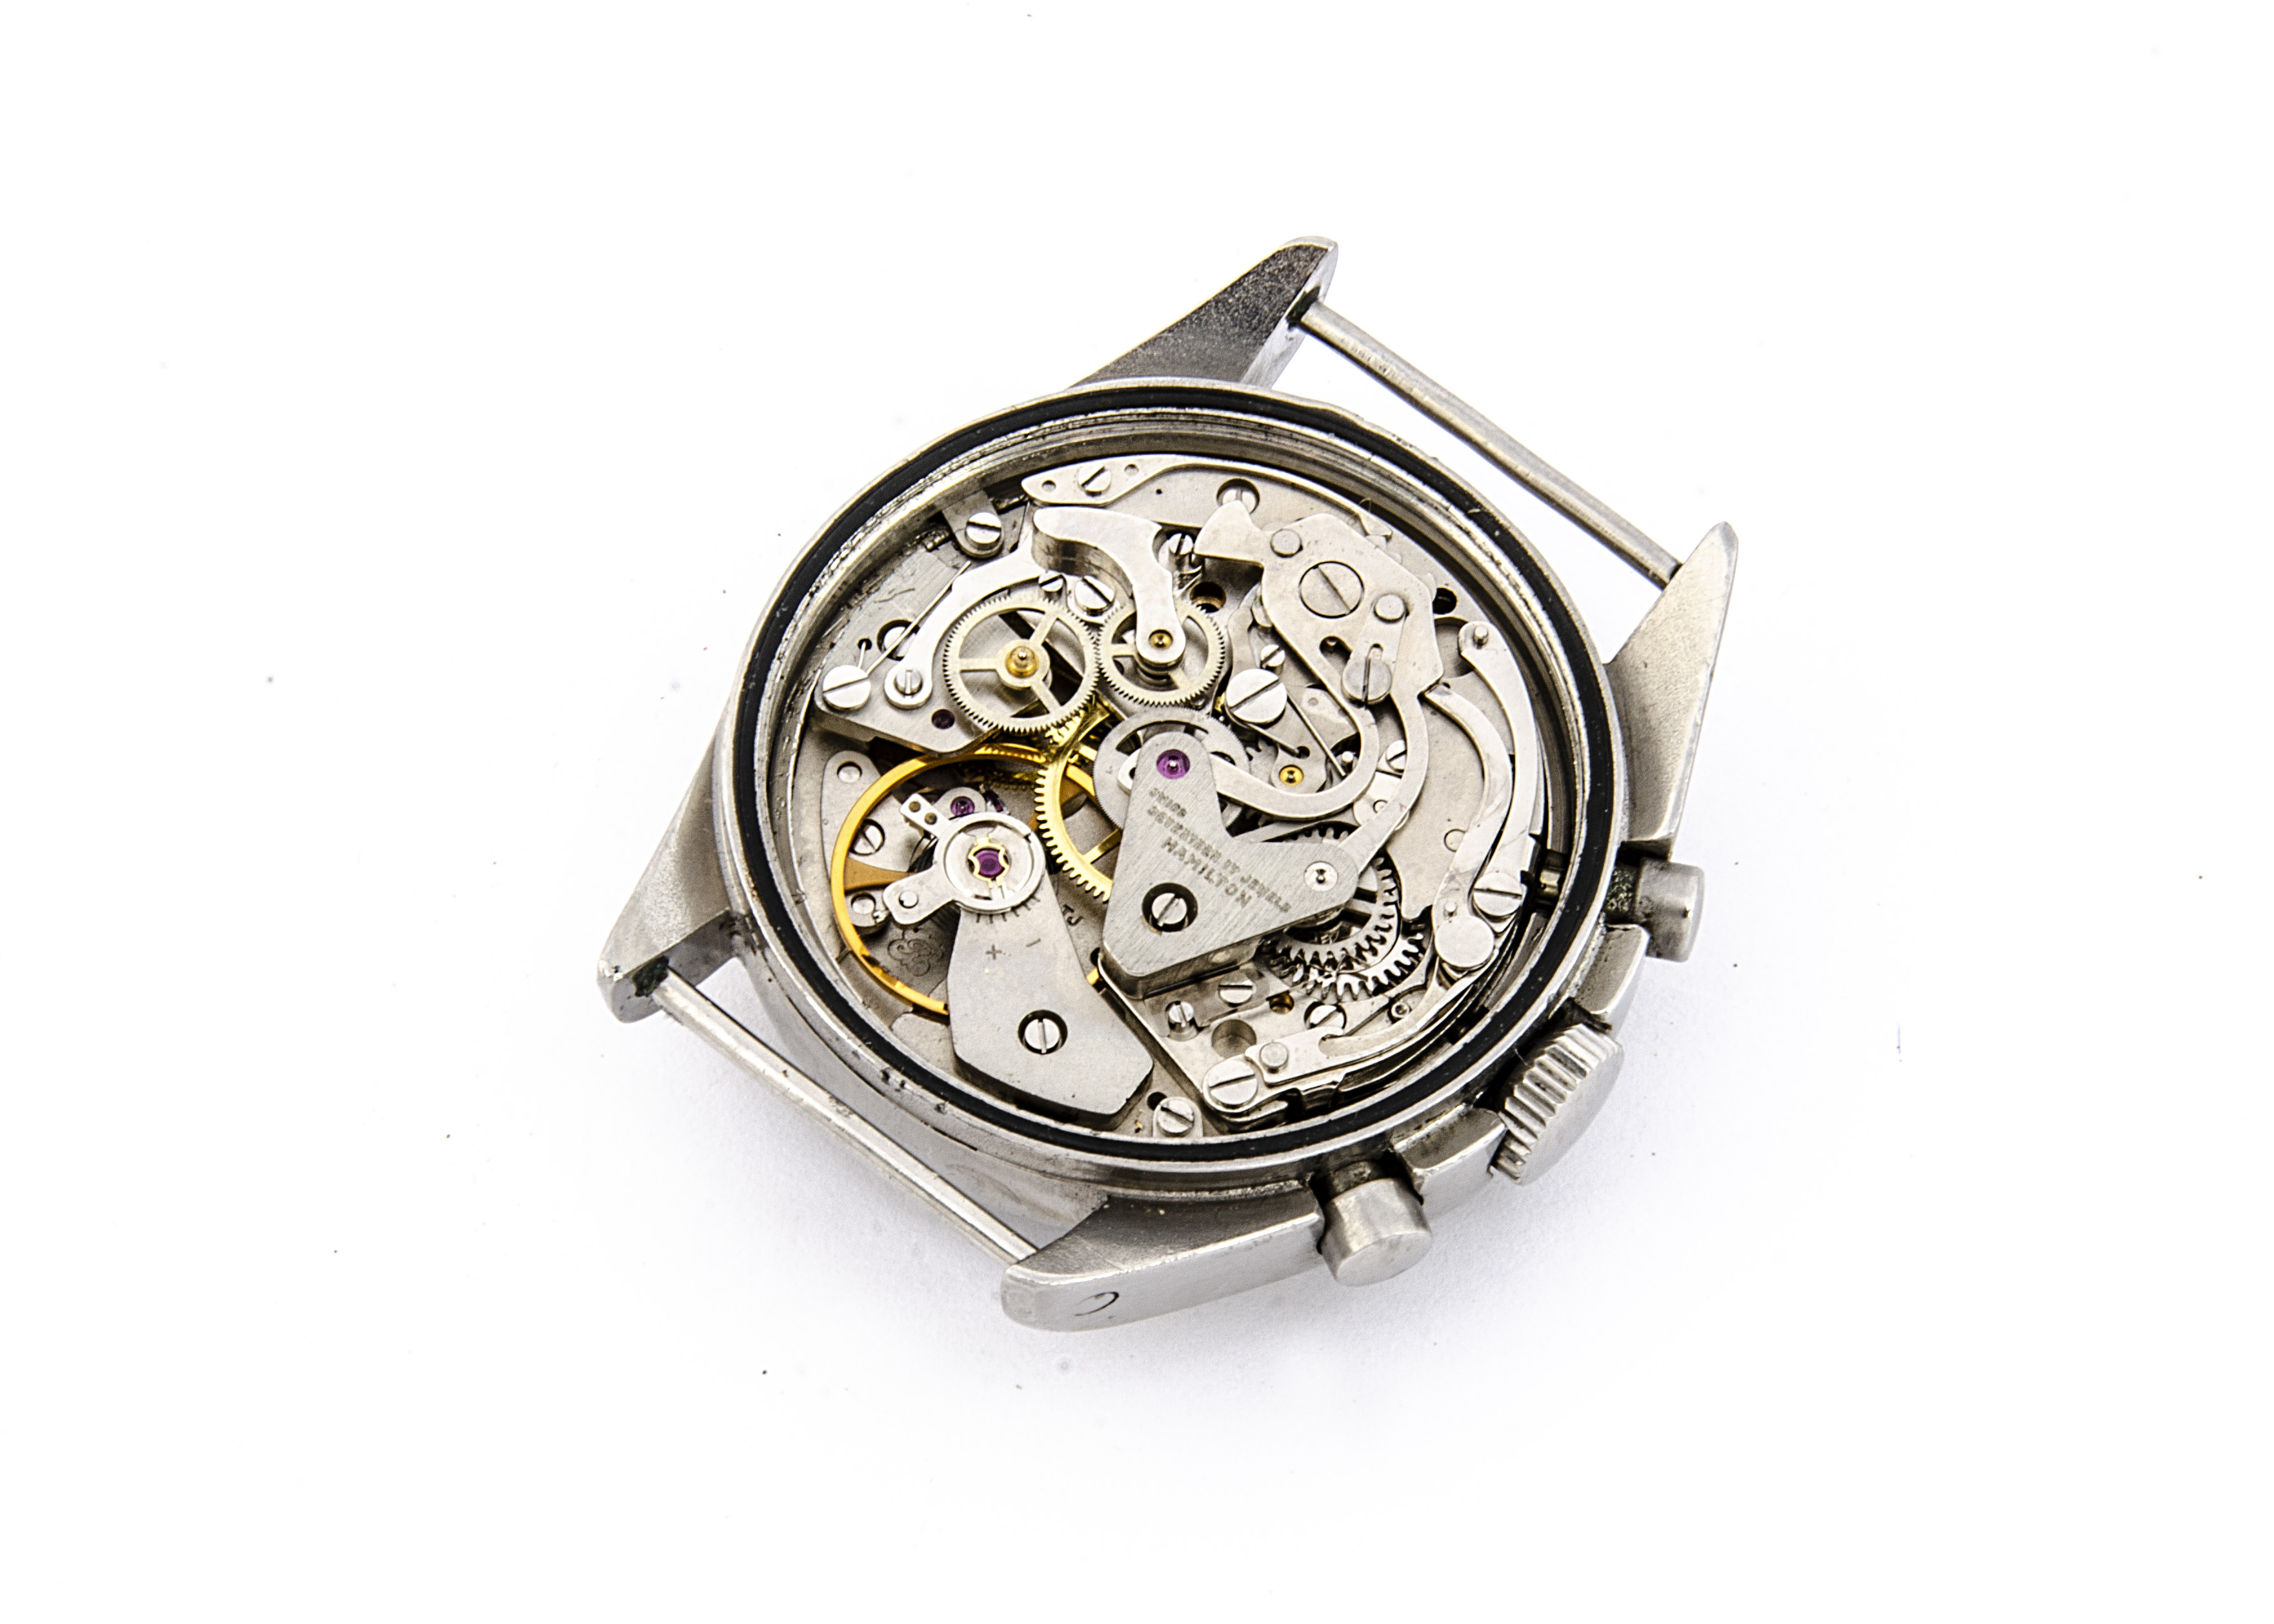 A 1970s Hamilton two button chronograph Royal Air Force stainless steel wristwatch, 39mm case, - Image 2 of 4